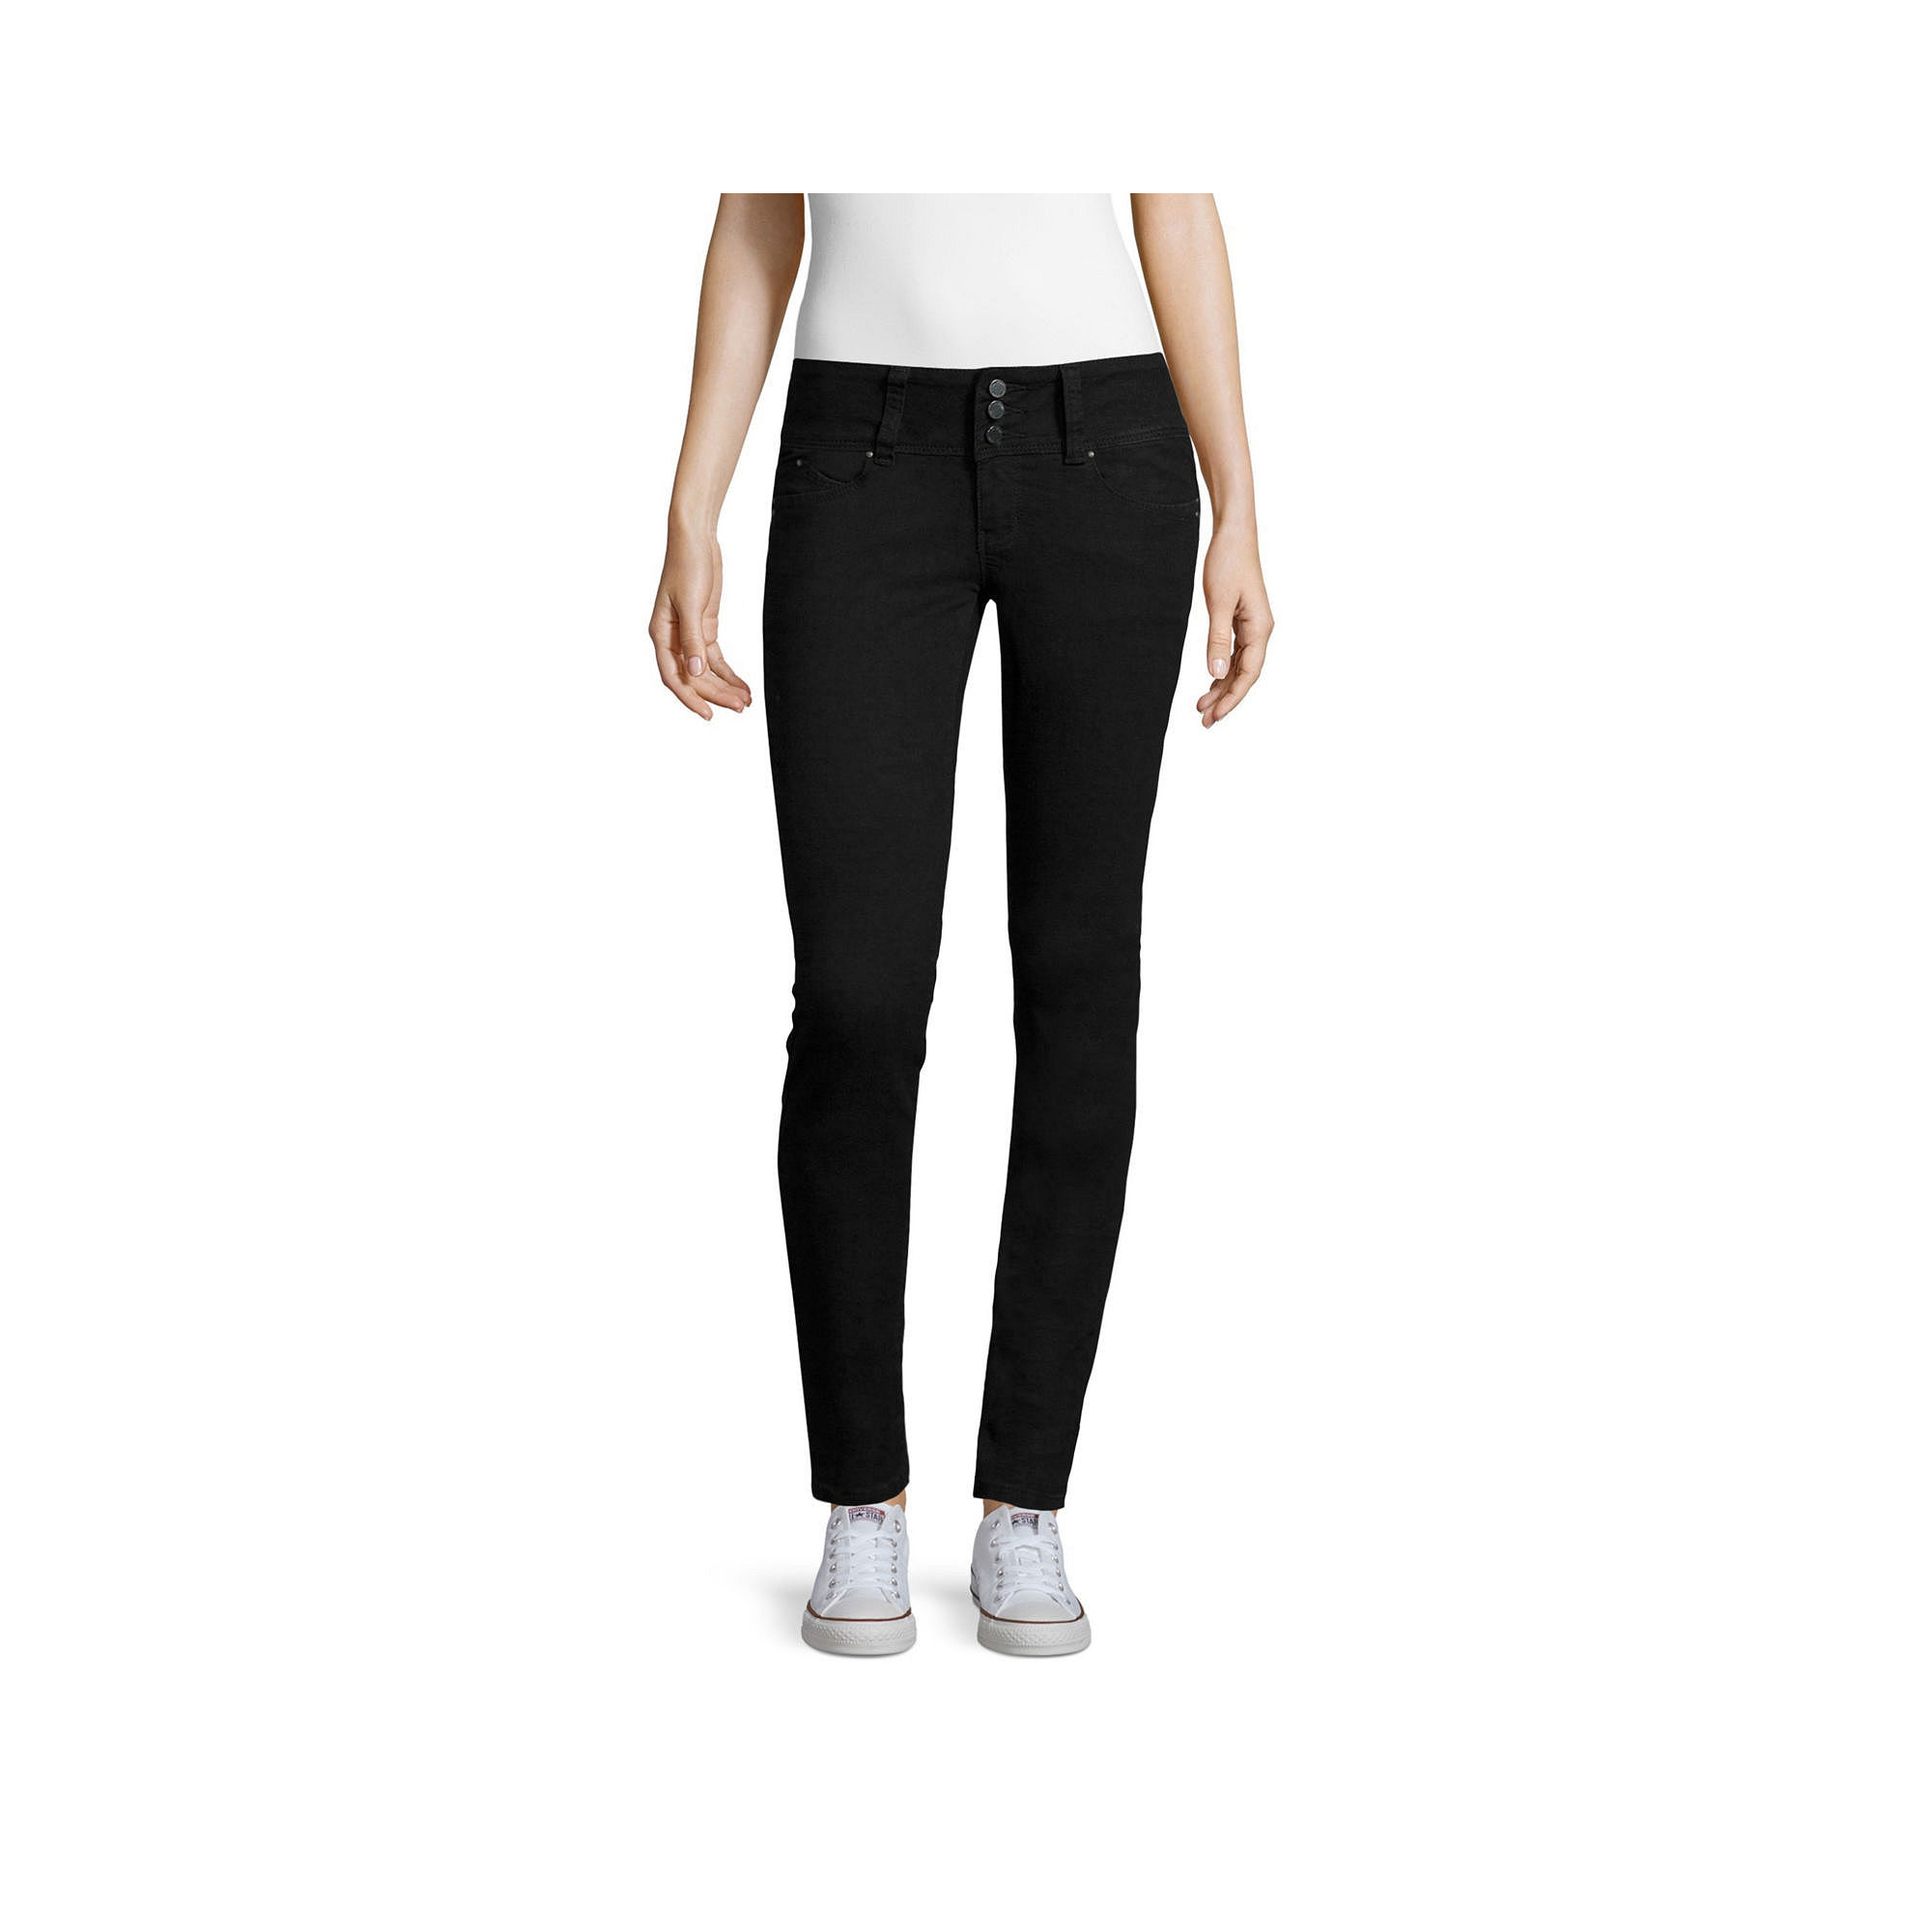 YMI Wanna Betta Butt Skinny Jeans - Juniors